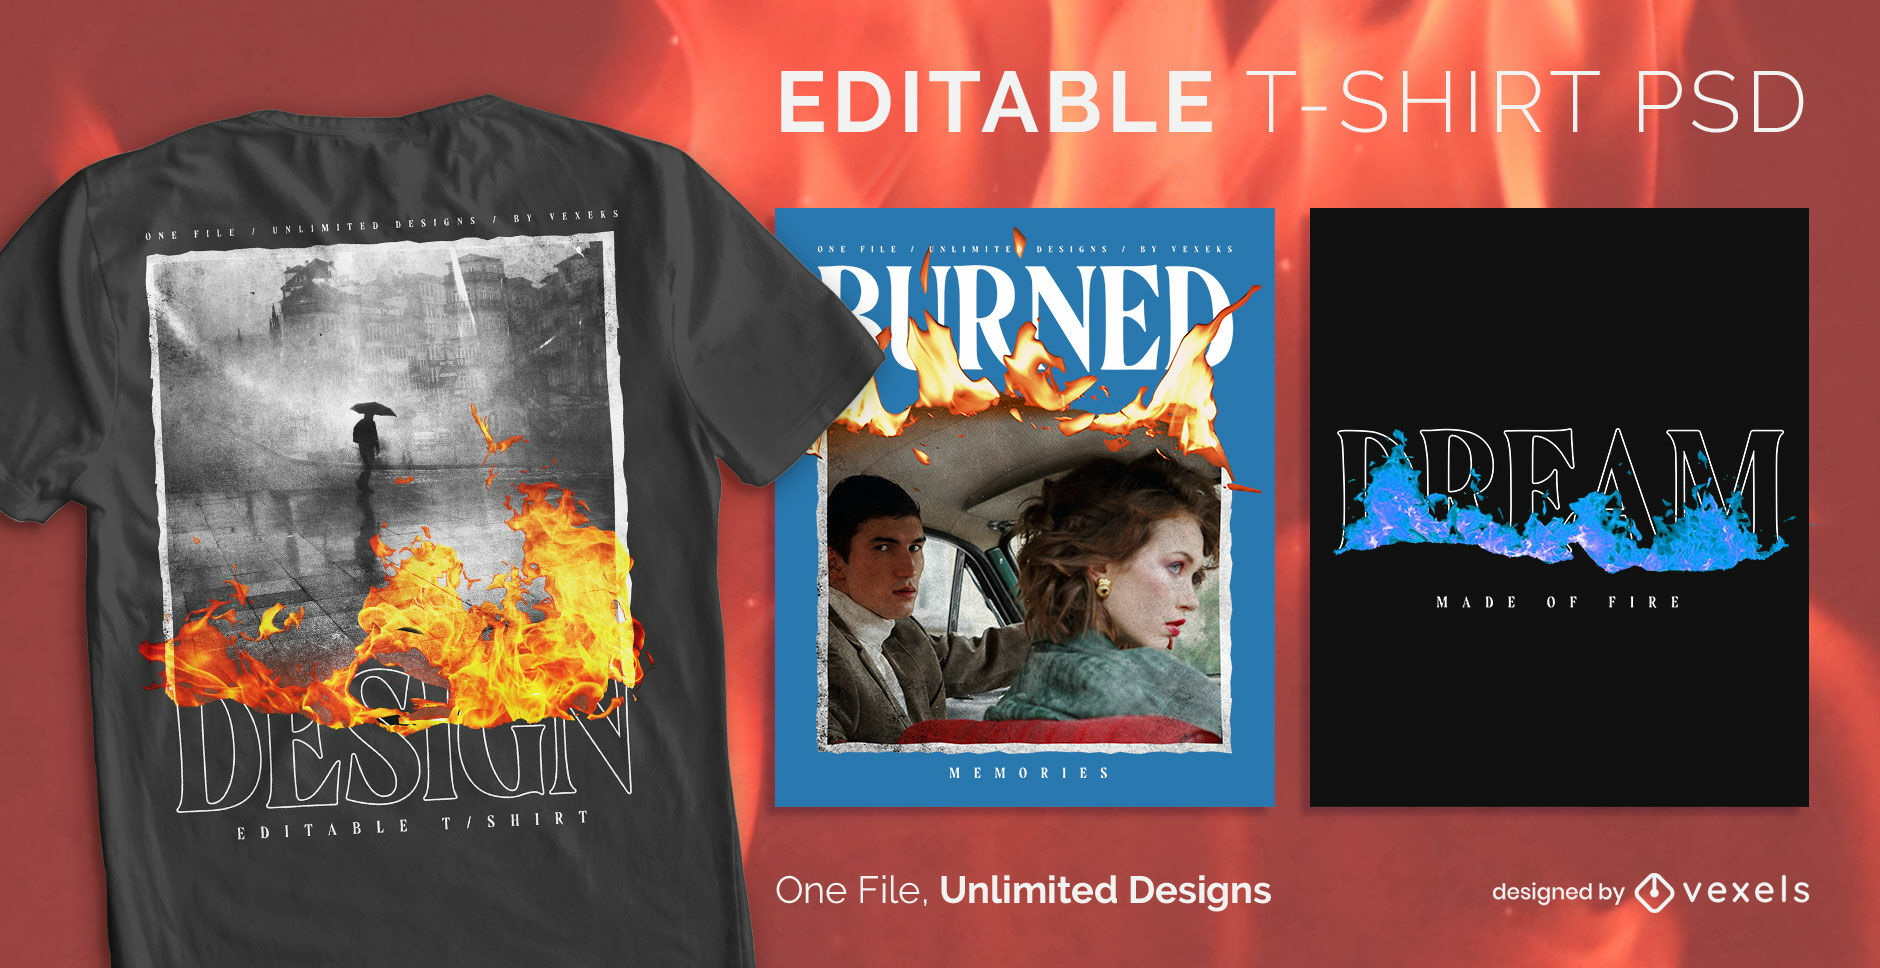 Burning text and image scalable t-shirt psd